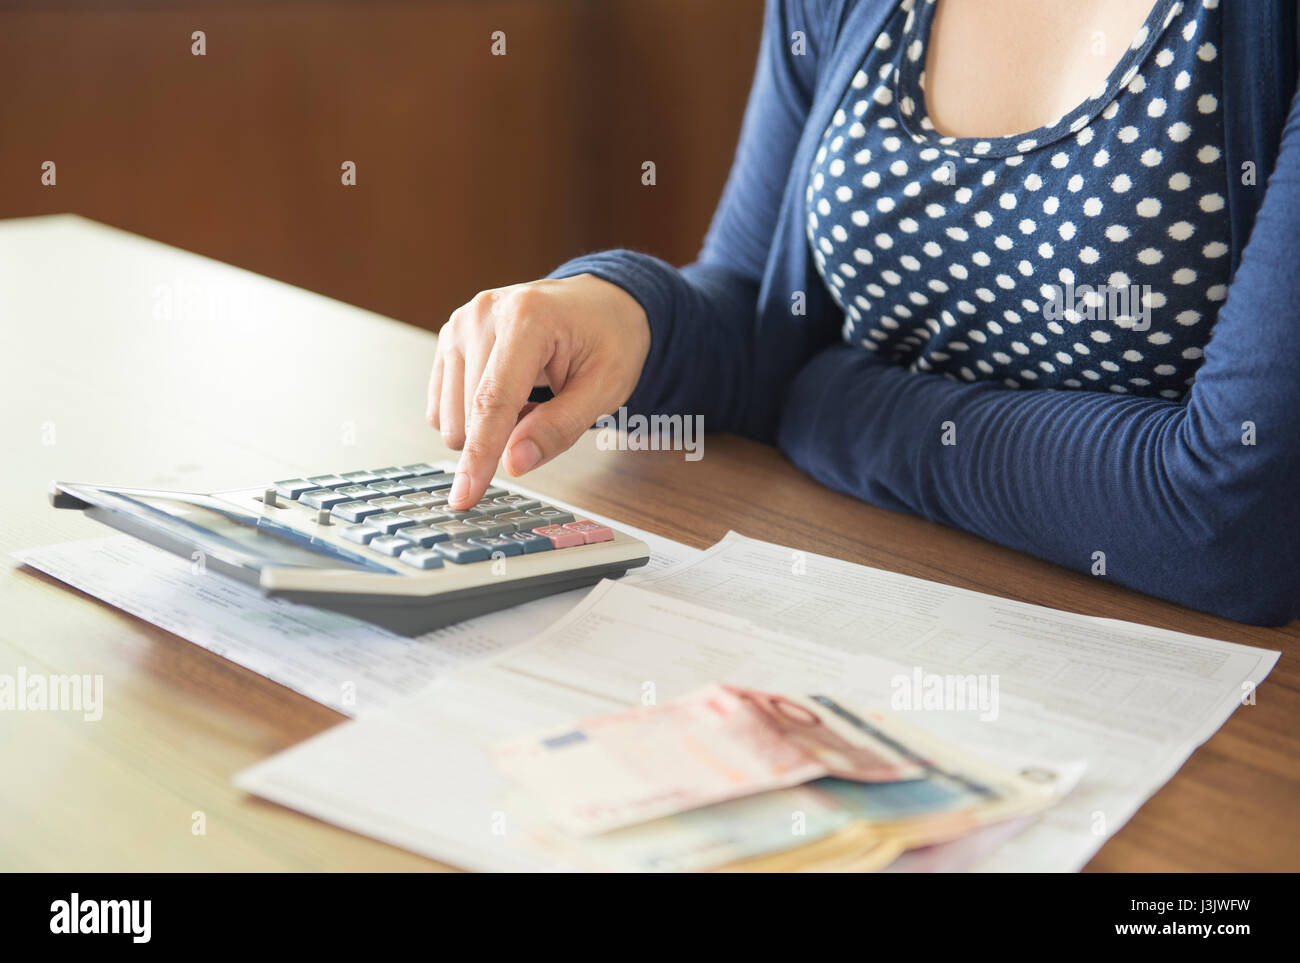 Women are calculating calculator to determine the cost to the invoice. - Stock Image